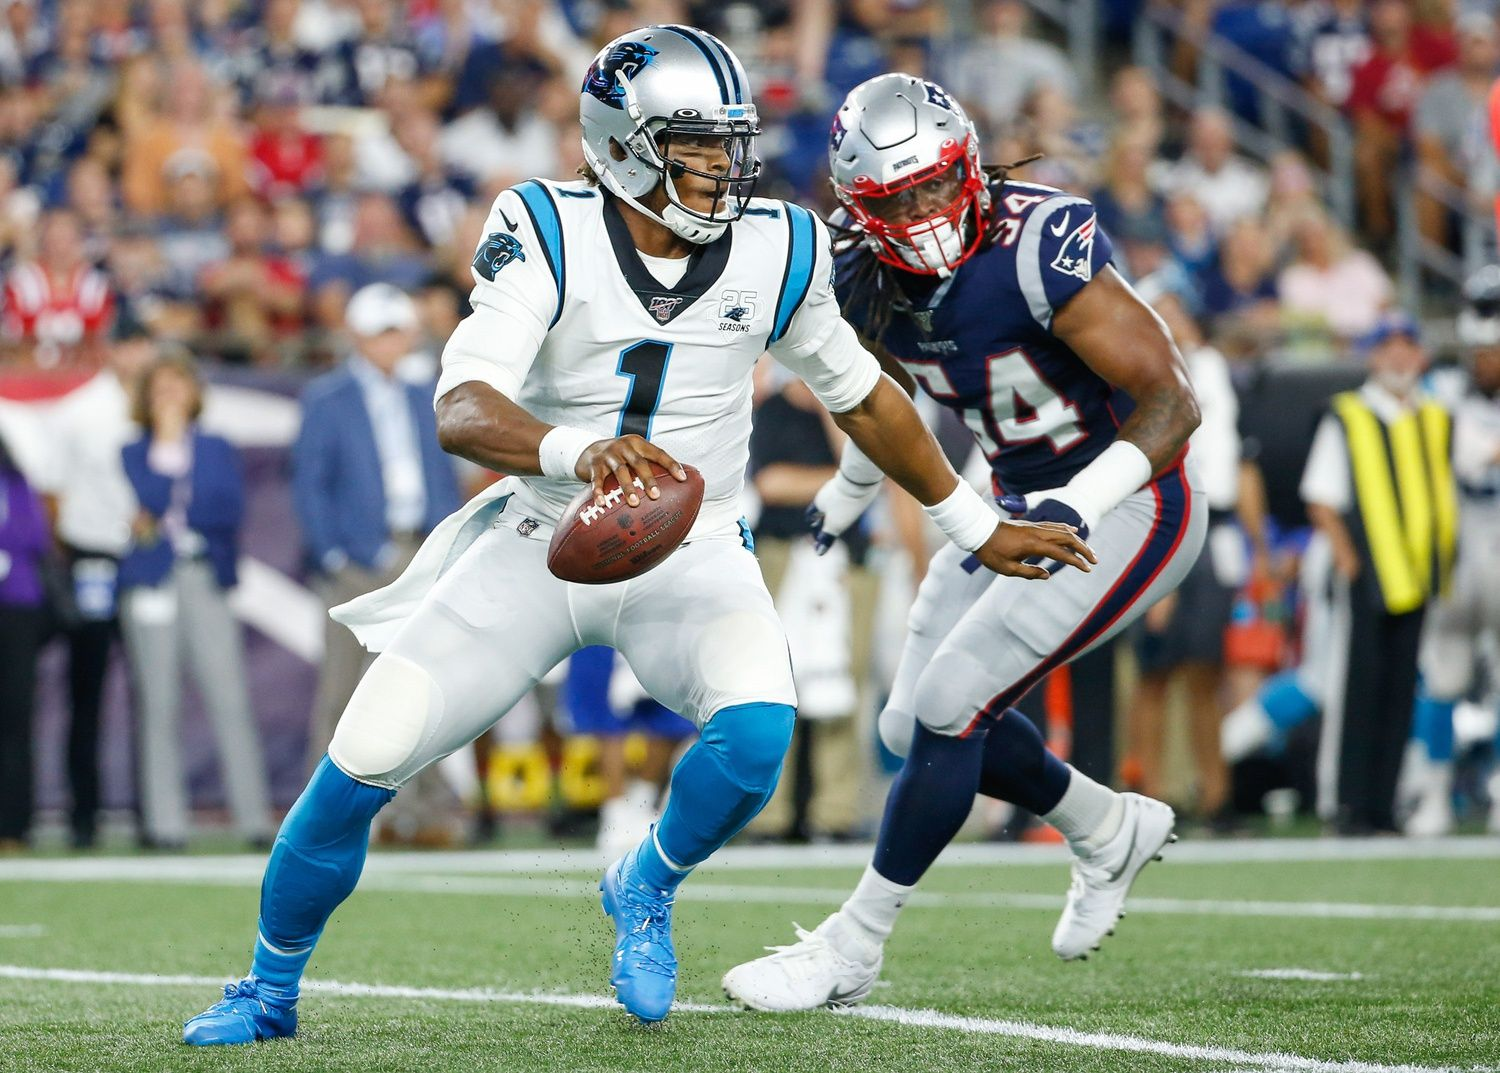 Photo Cam Newton Shows His Gratitude For Bill Belichick In Latest Instagram Post Nfl In 2020 Nfl News Nfl Bill Belichick